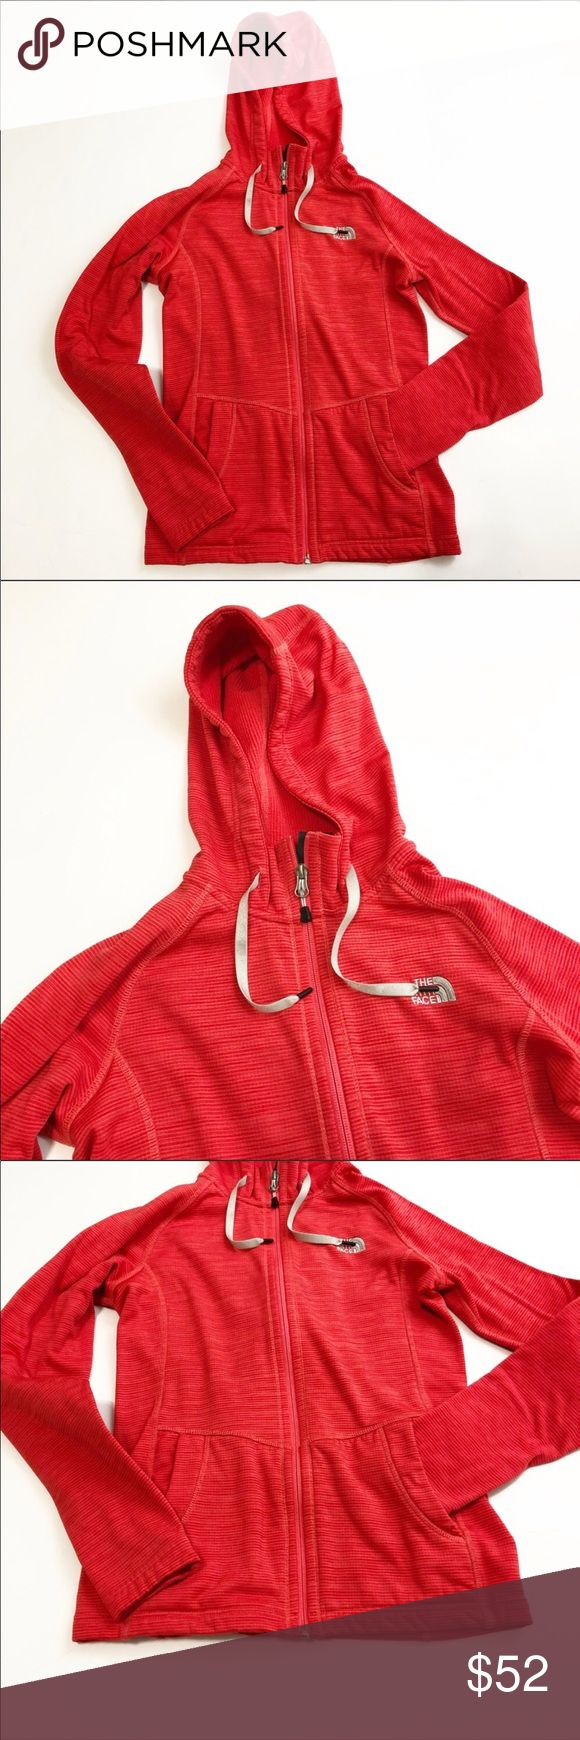 North Face Red Zip Up Hoodie North Face Red Zip Up Hoodie in size extra small (XS). Excellent condition. Features a hood and two pockets. Very cozy! Approximate measurements: length: 23 inches; bust: 16.5 inches. The North Face Tops Sweatshirts & Hoodies